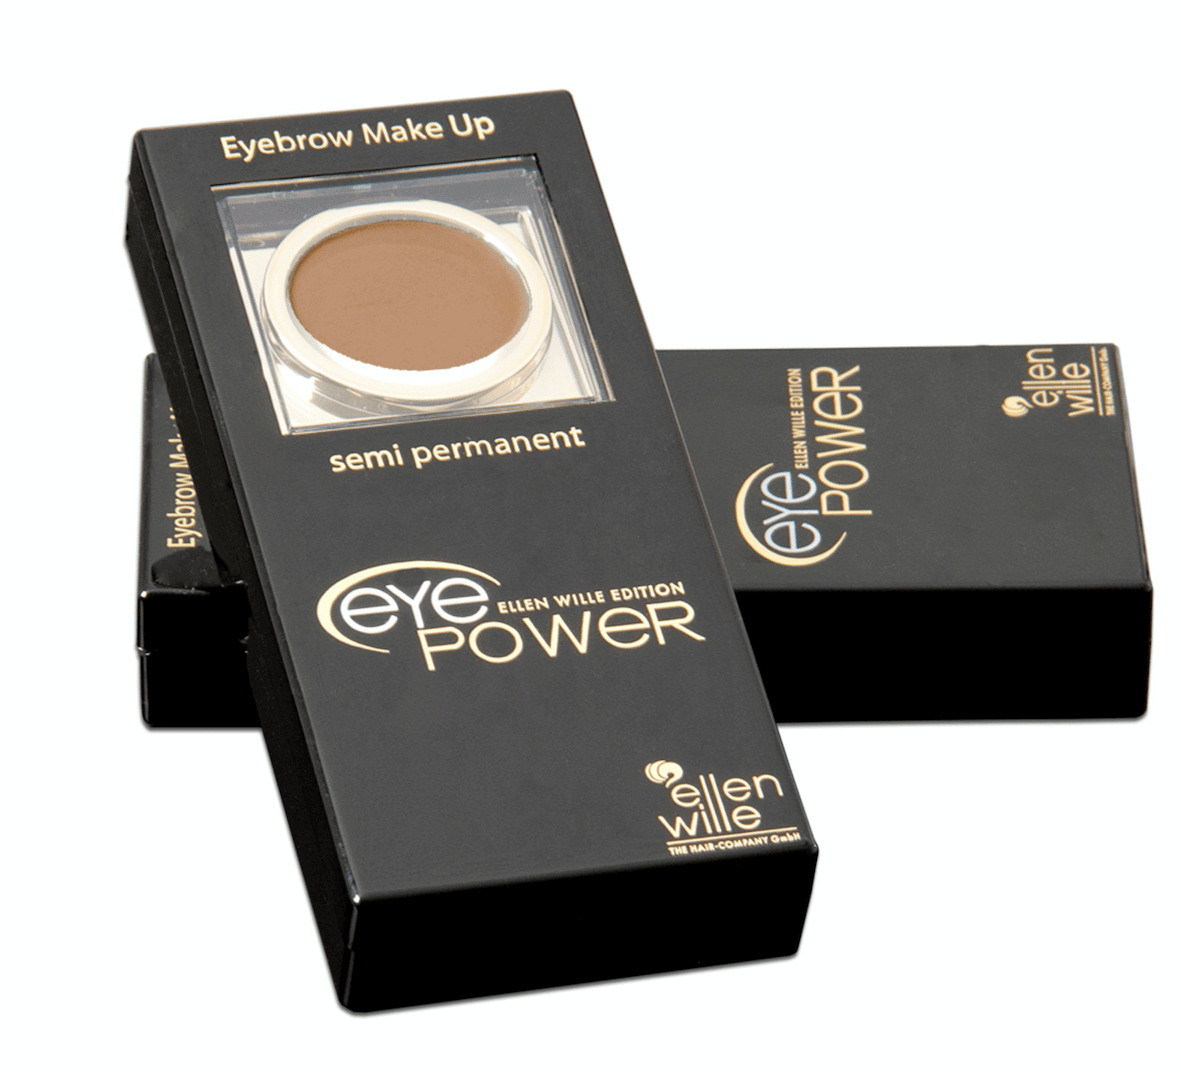 EyePower Semi Permanent Eyebrow Powder